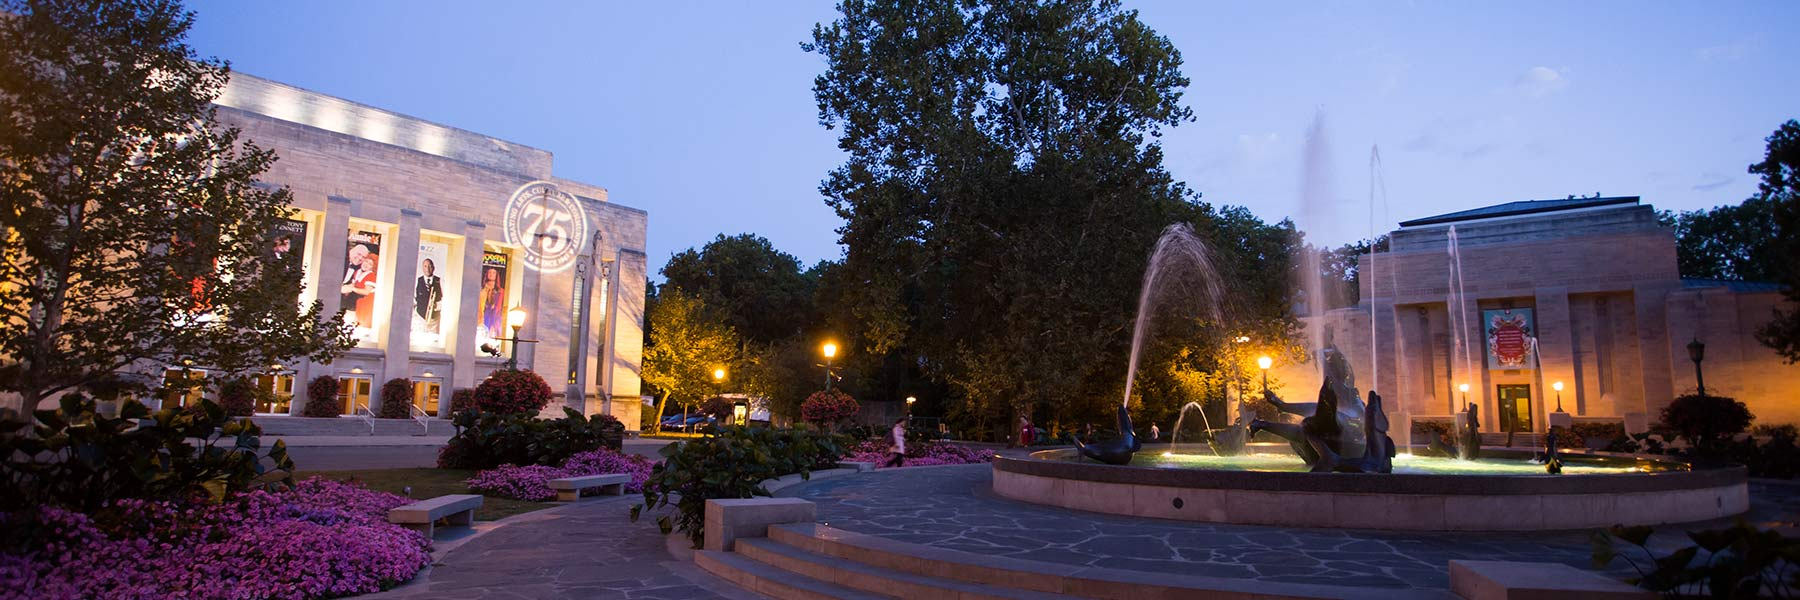 The IU Auditorium and Showalter Fountain in the evening.